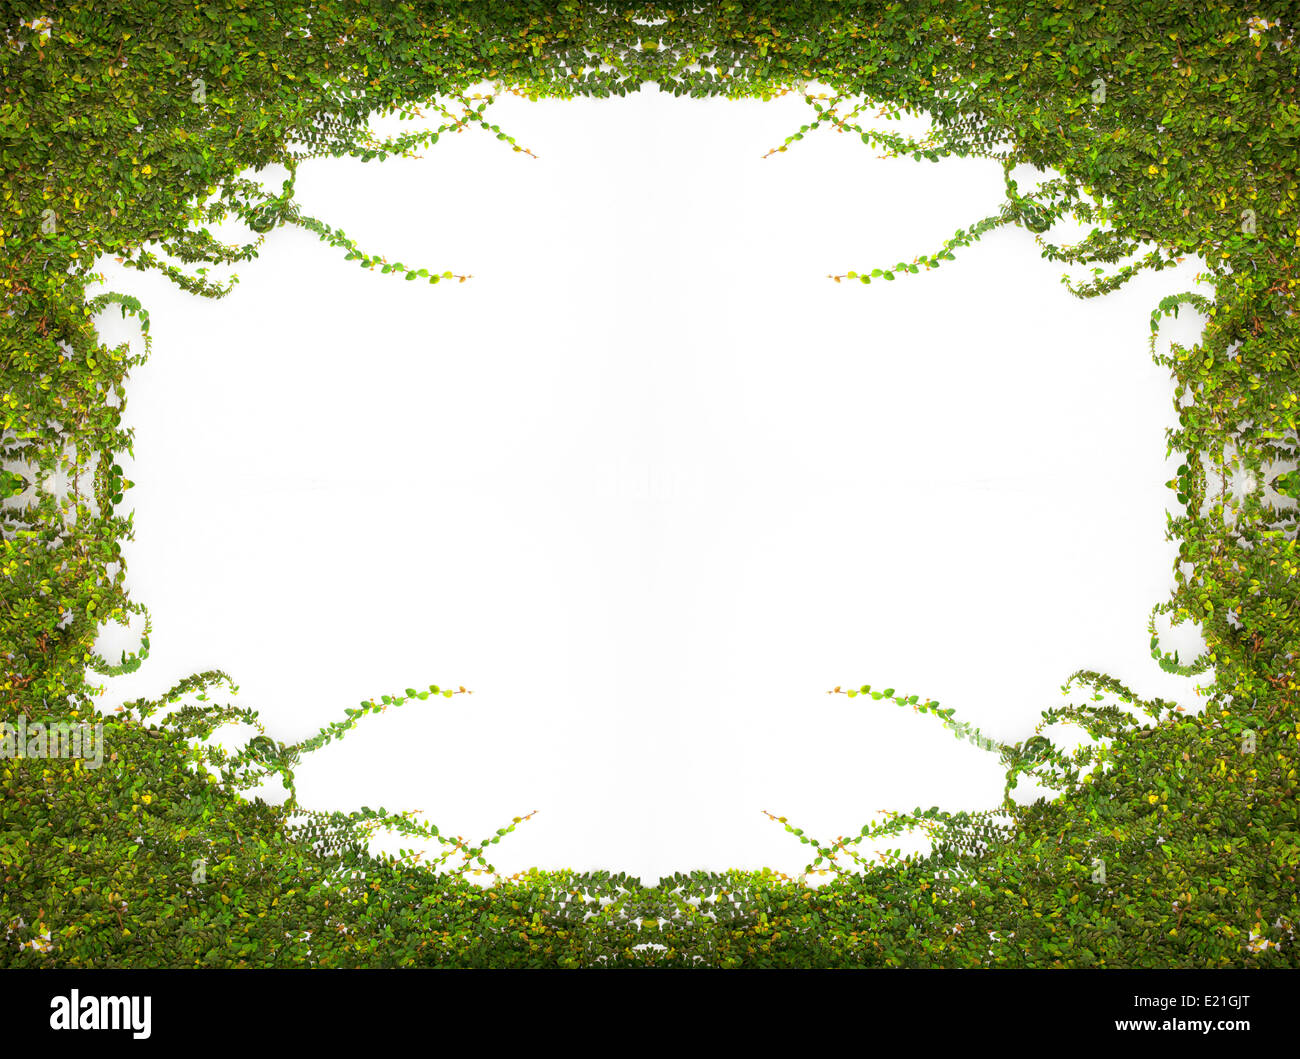 Frame The Green Creeper Plant on the Wall - Stock Image